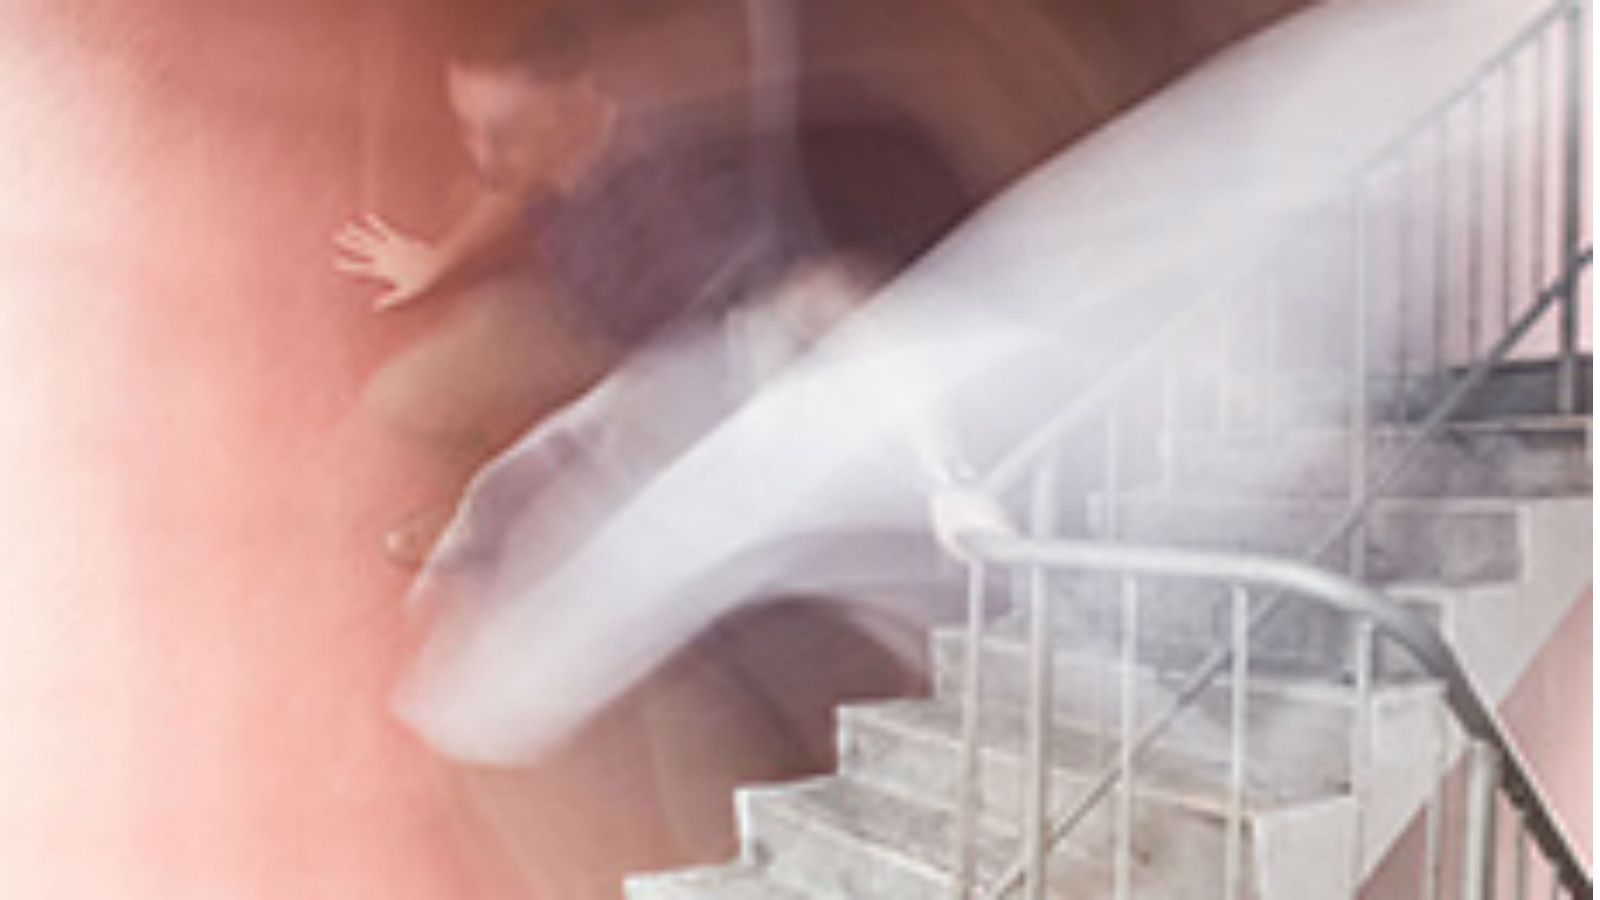 An motion blurred image of someone coming down stairs.